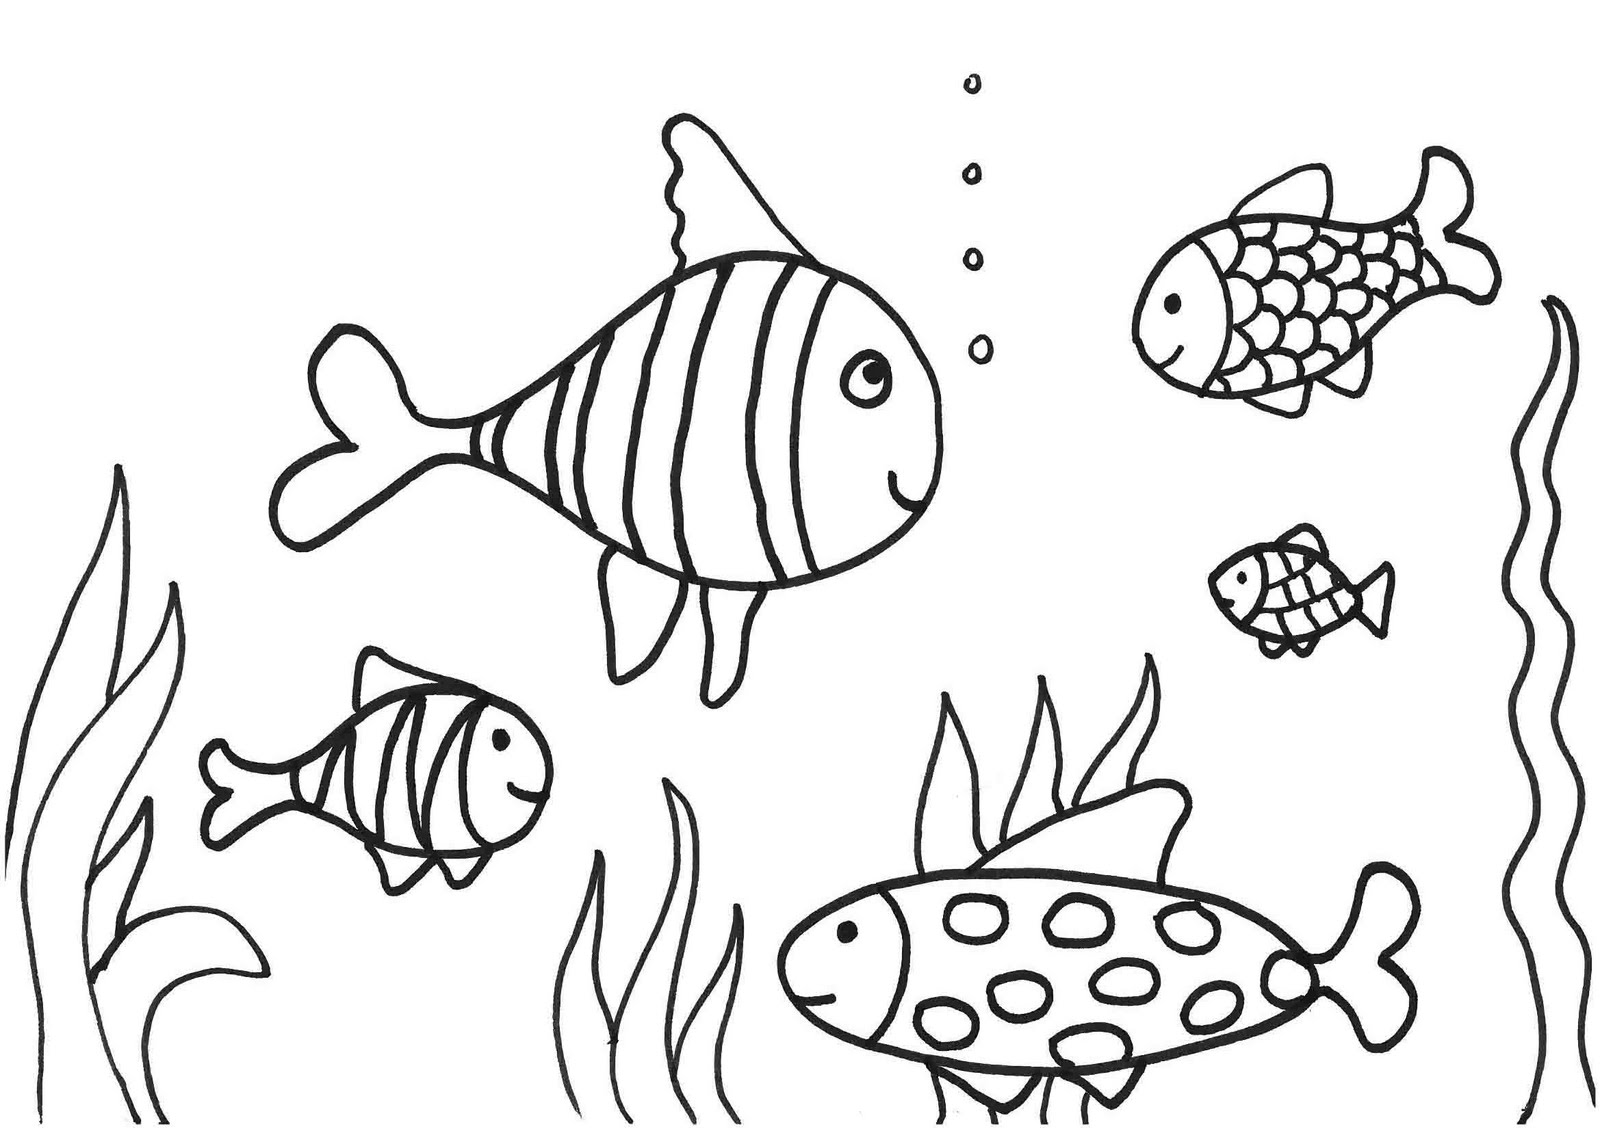 Best Website For Free Coloring Pages : Simple fish coloring pages download and print for free